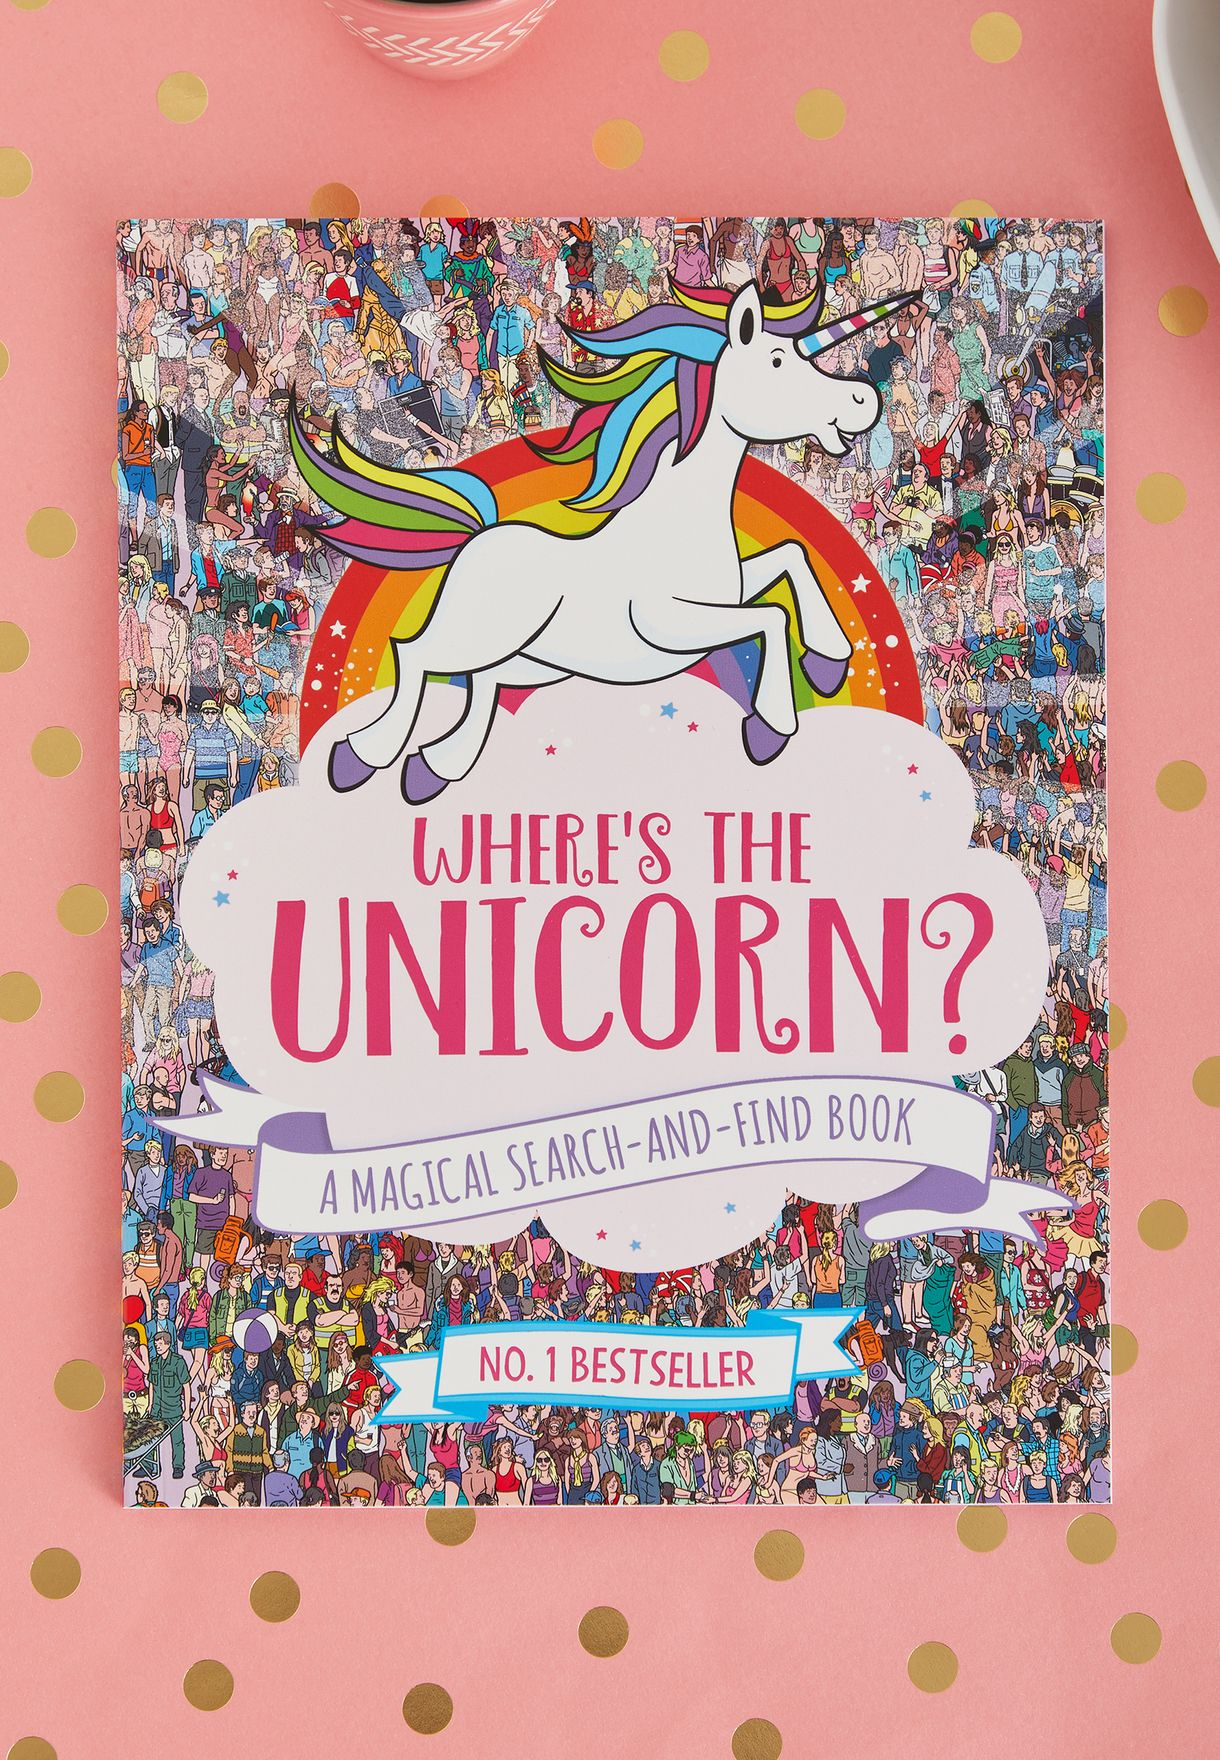 Where is The Unicorn